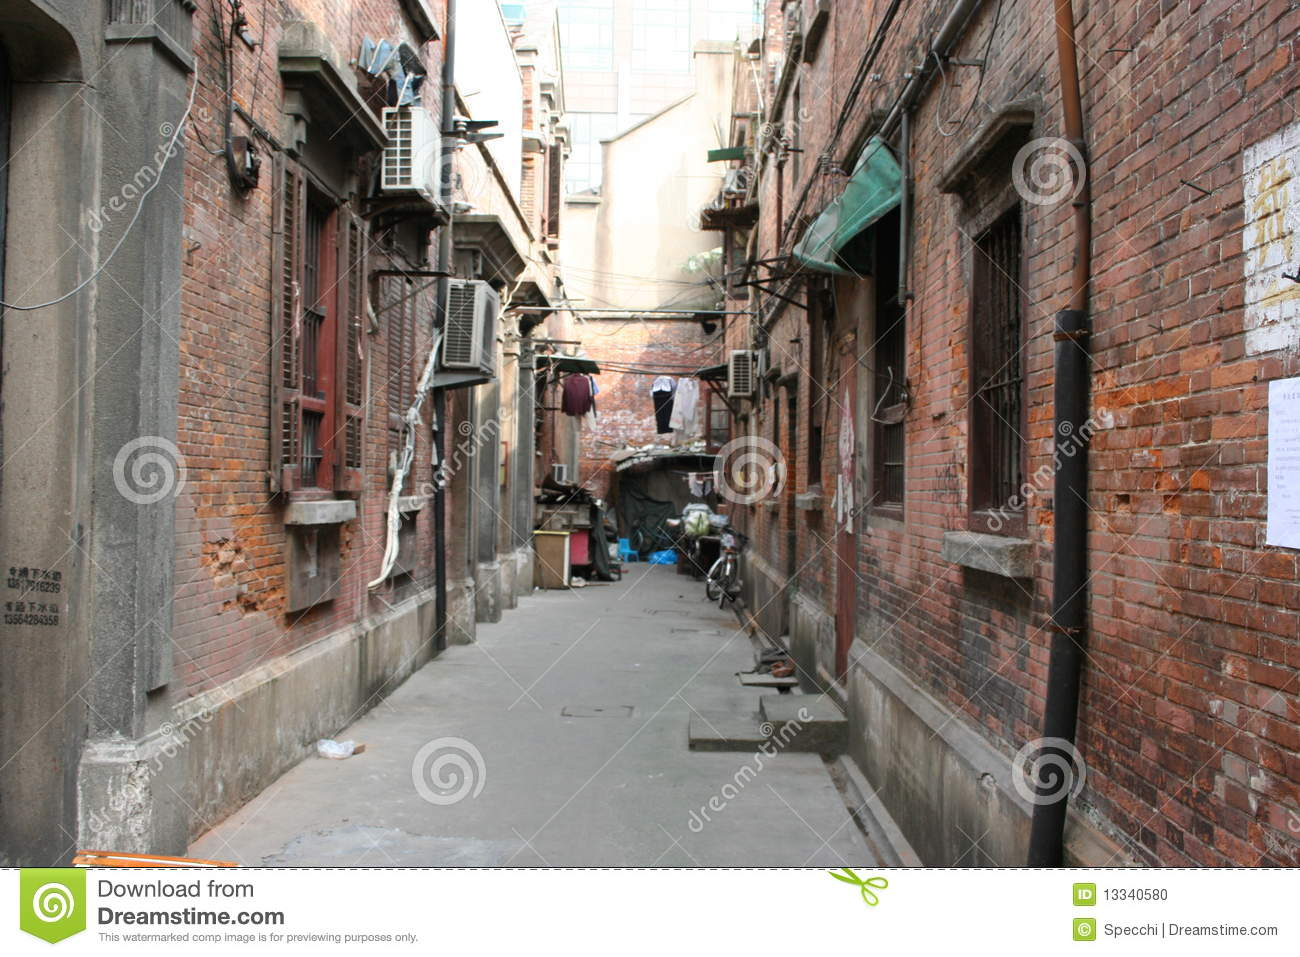 Stary alleyway